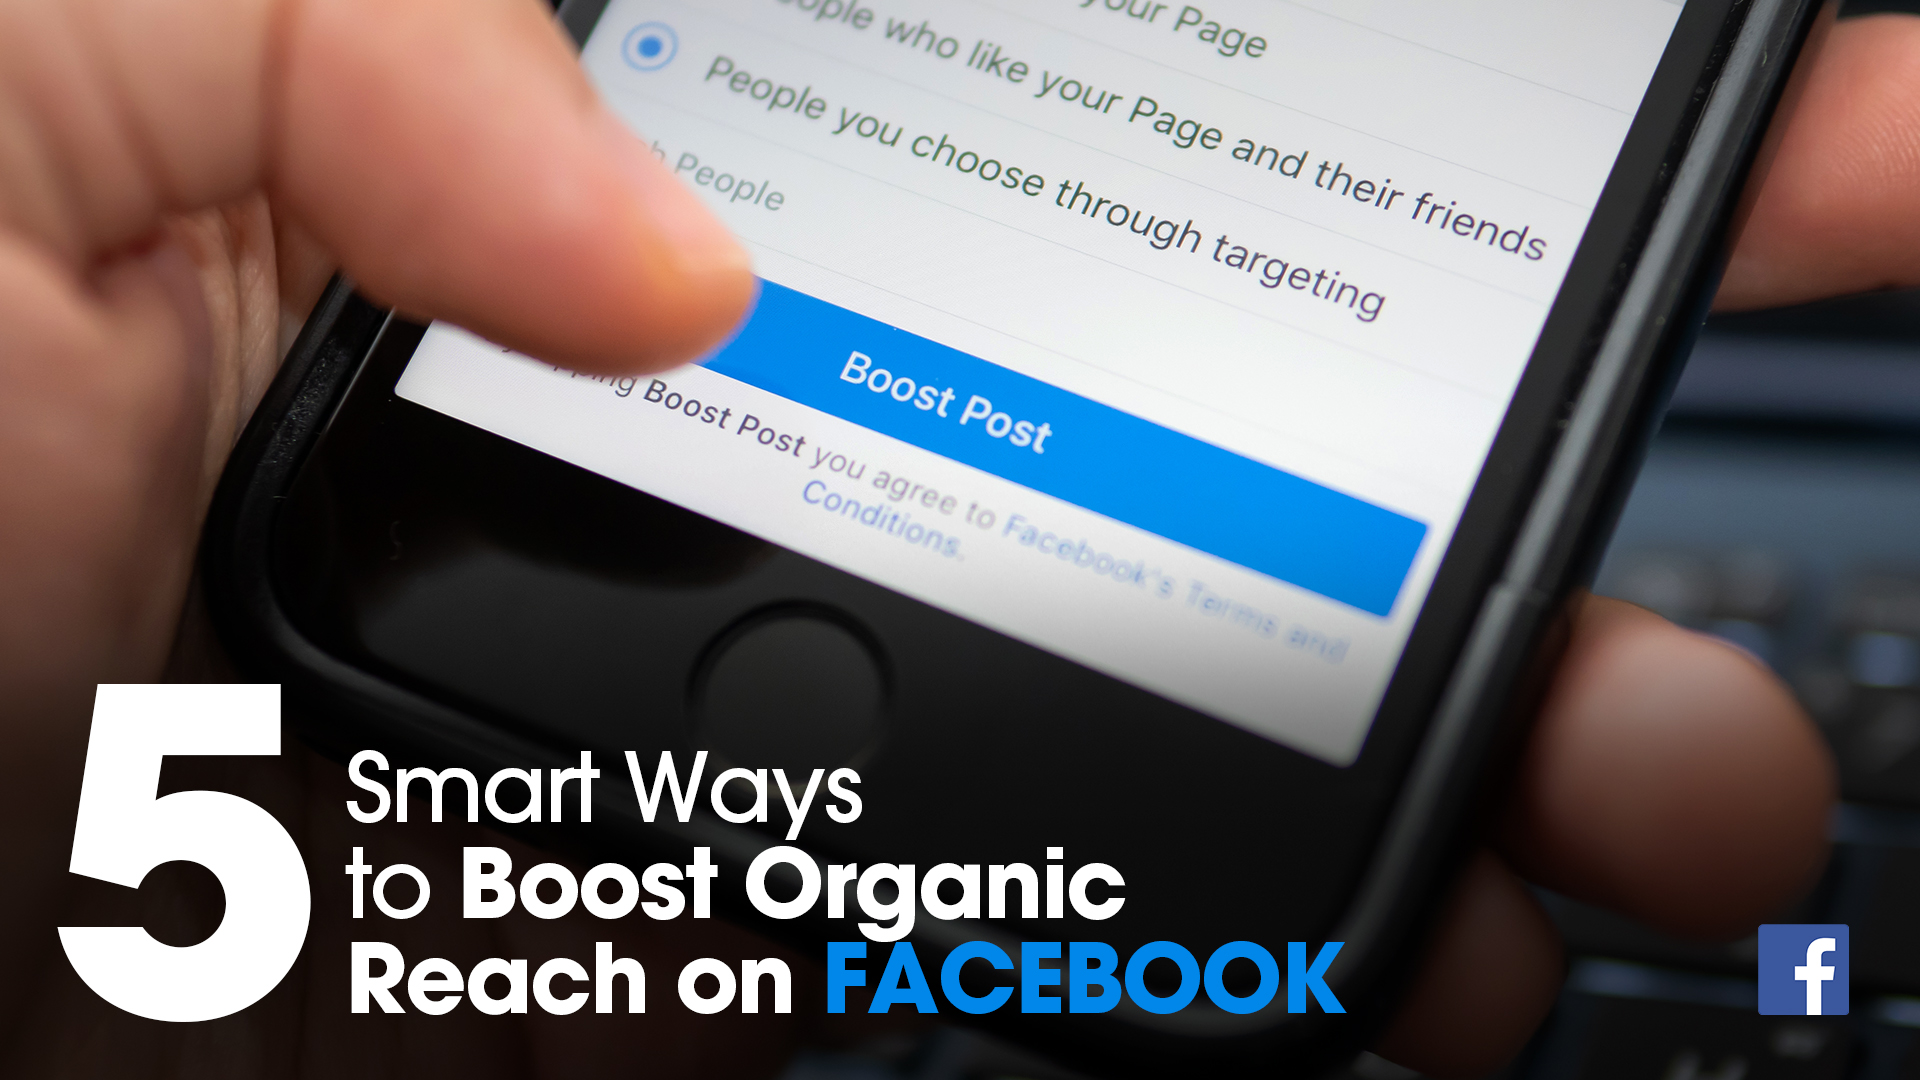 5 Smart Ways to Boost Organic Reach on Facebook